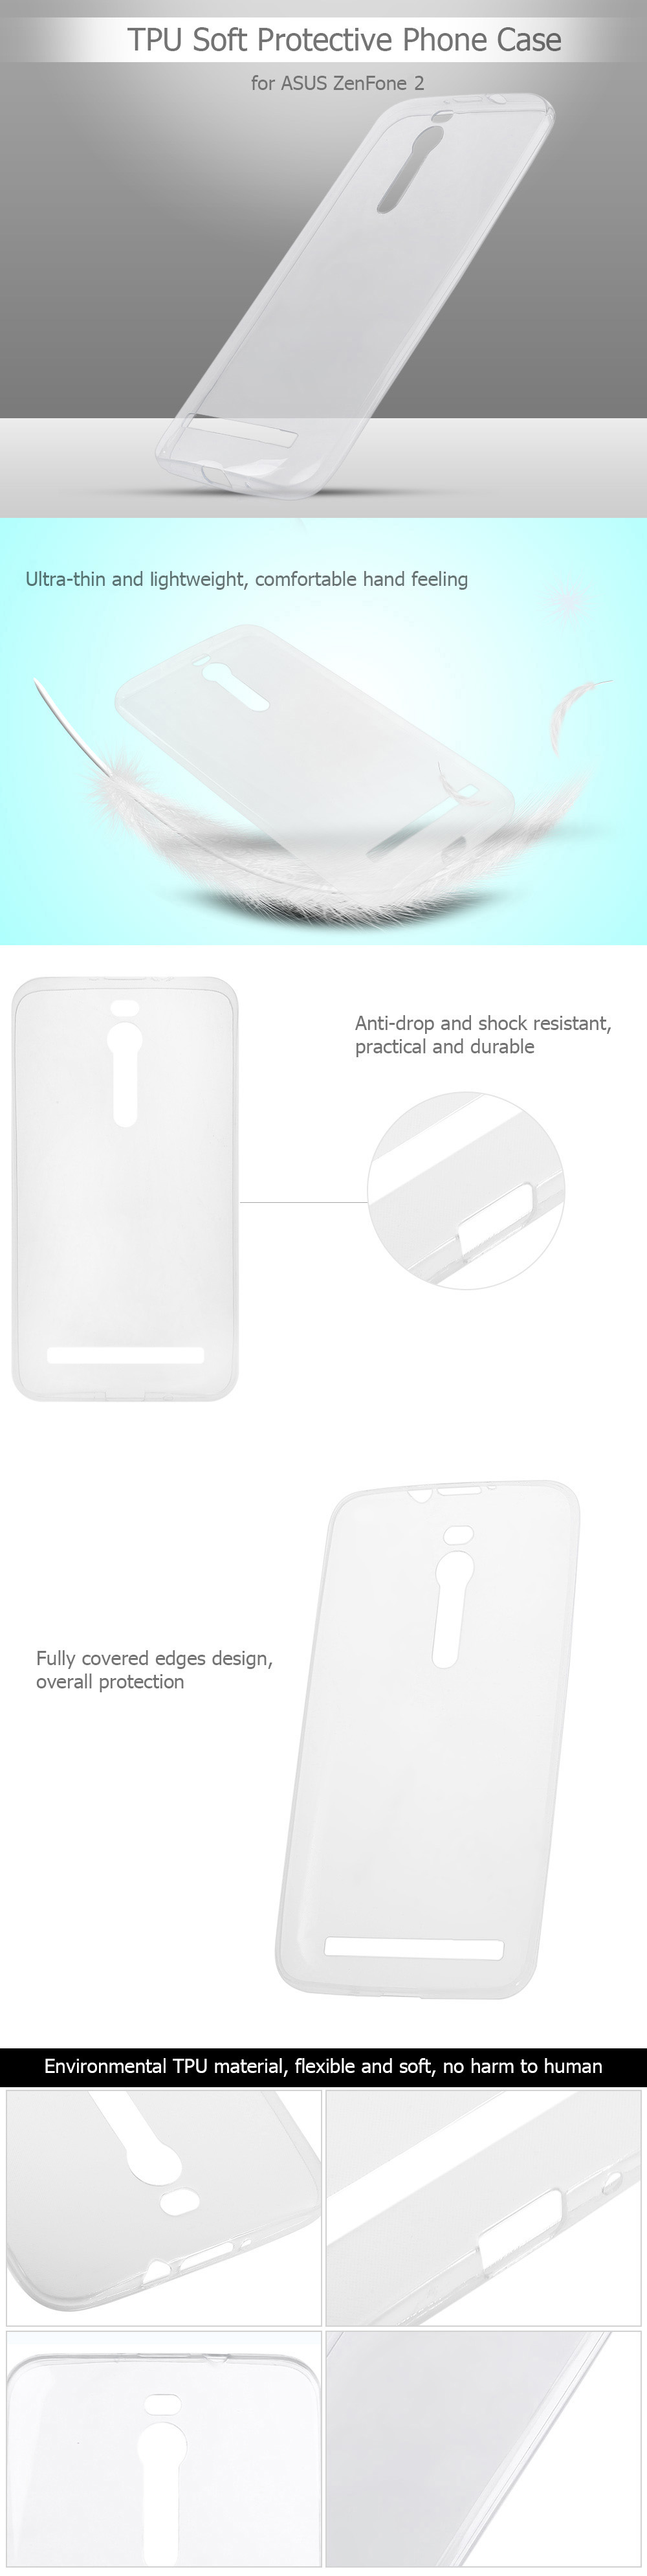 Luanke Transparent TPU Soft Case Protective Cover Phone Protector for ASUS ZenFone 2